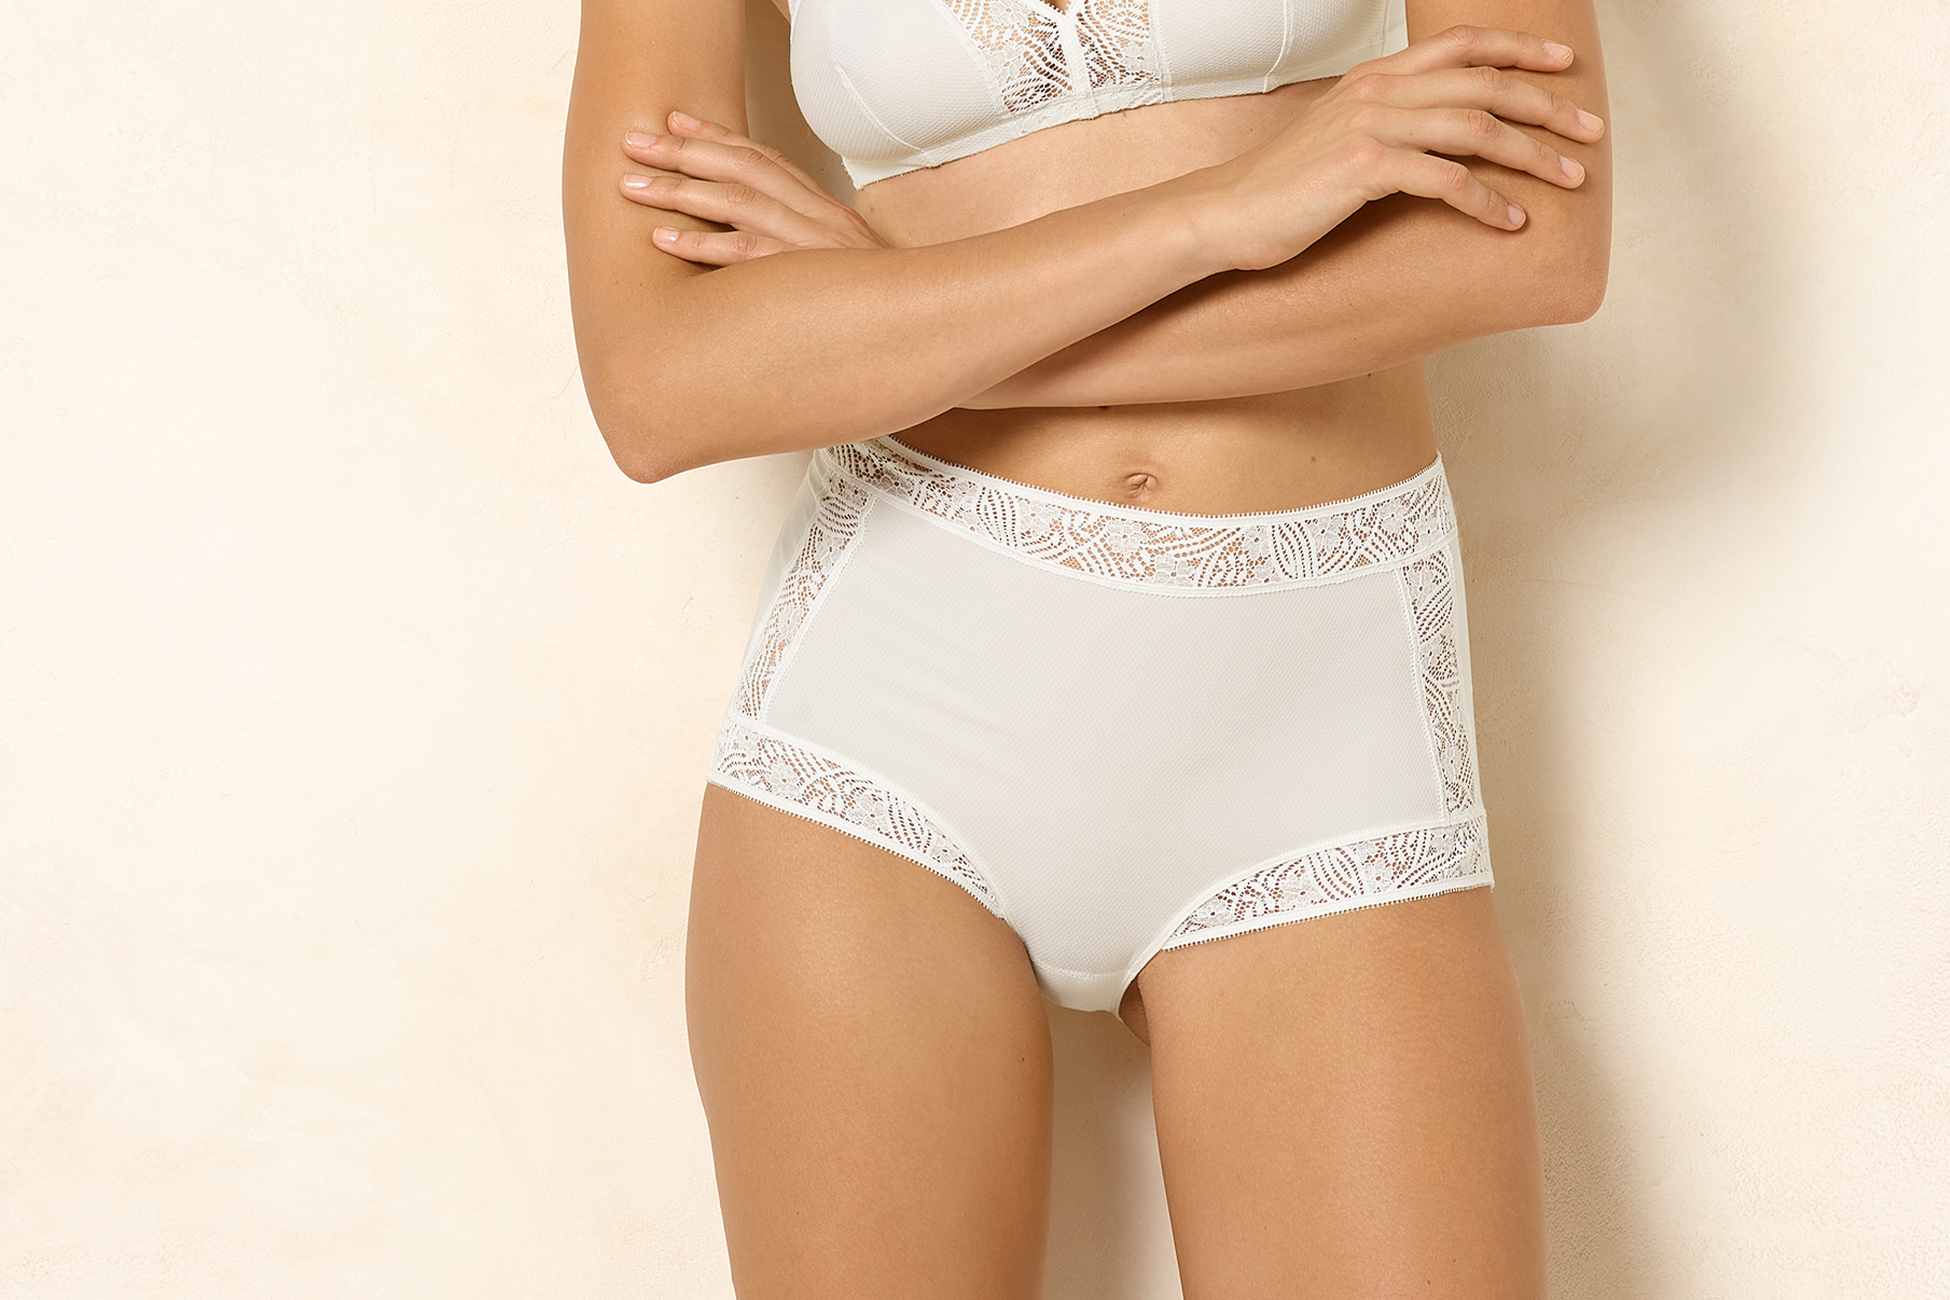 Fleur High-waisted brief standard view 1